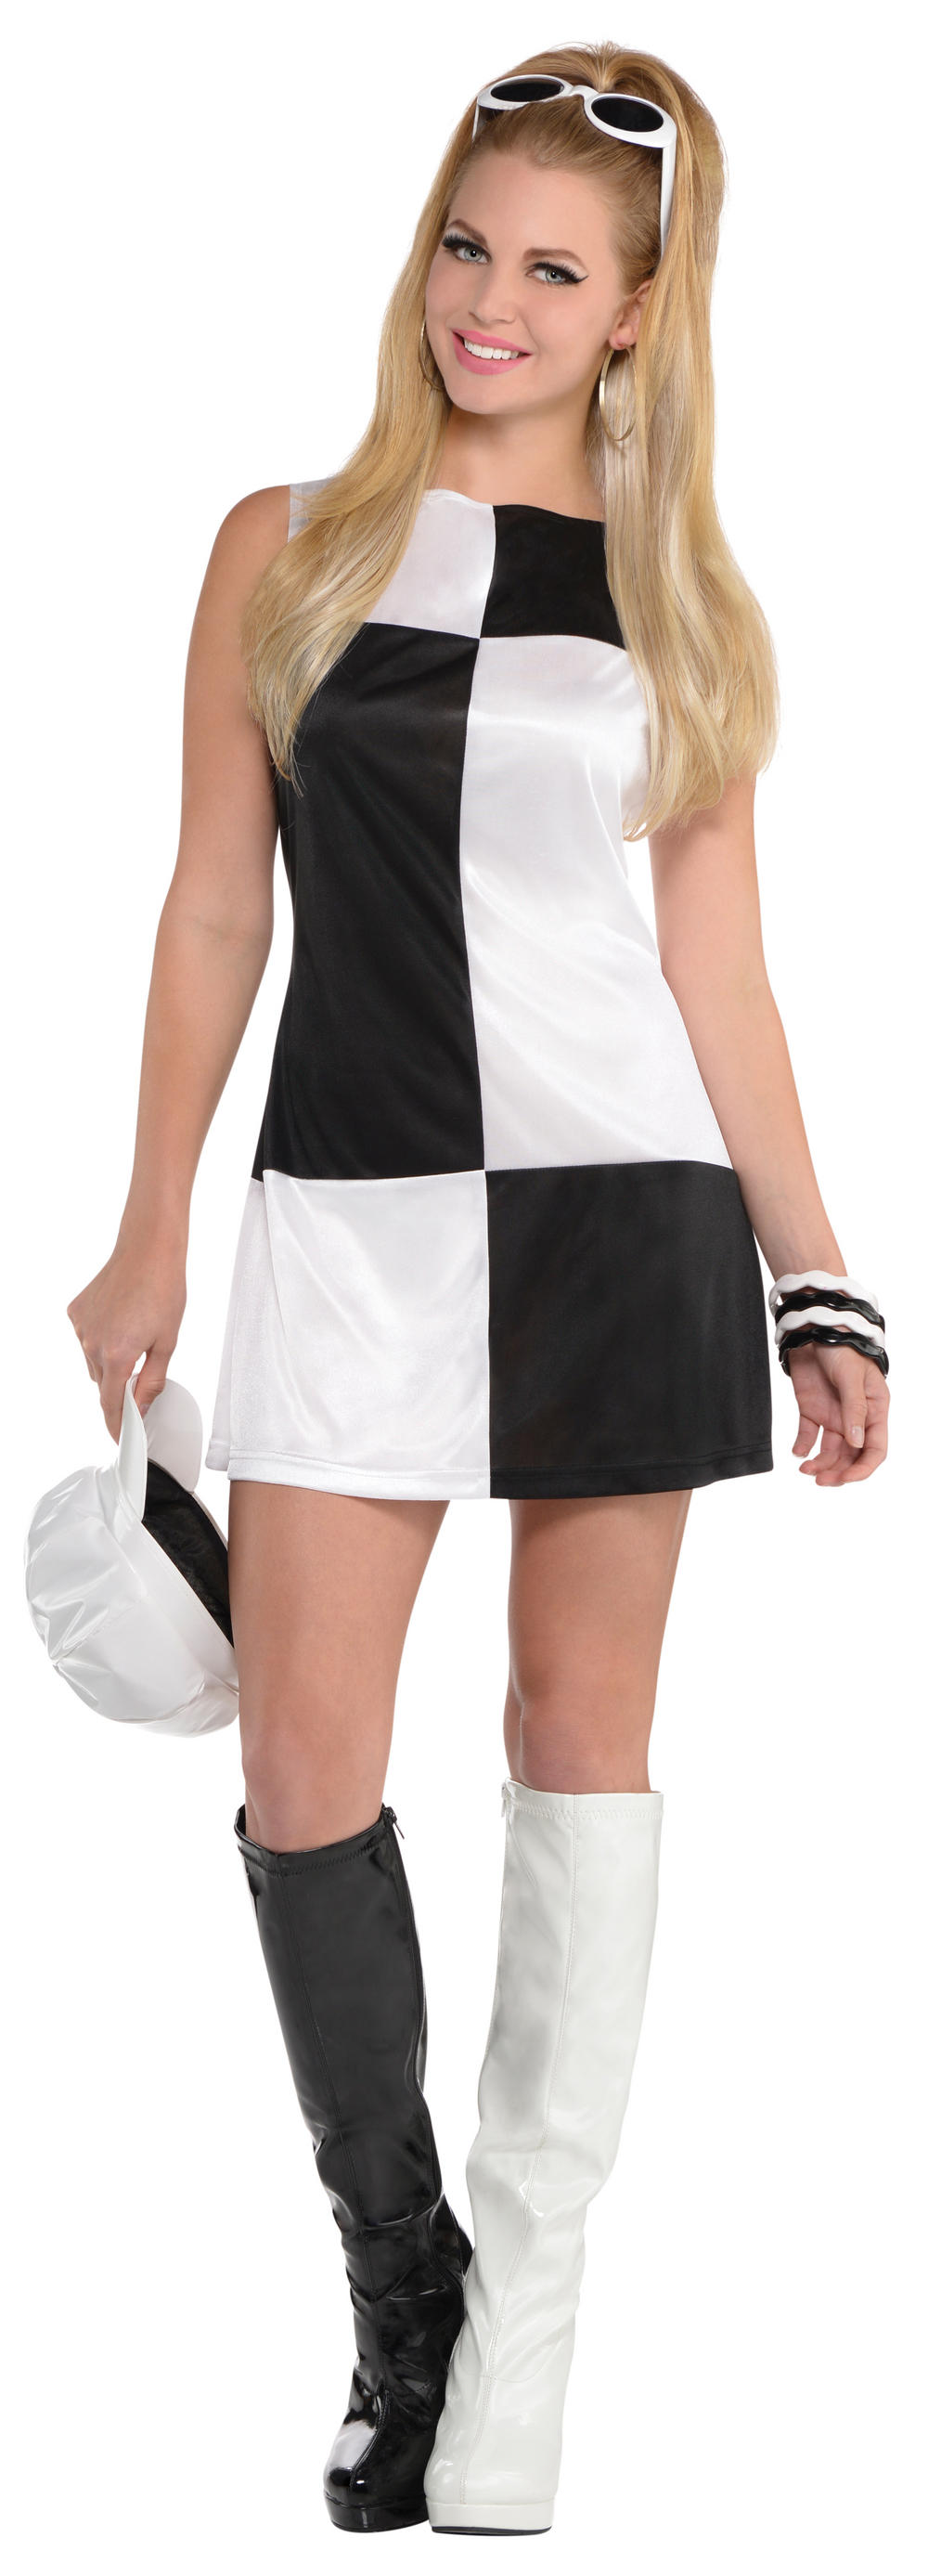 Mod Girl Ladies Costume